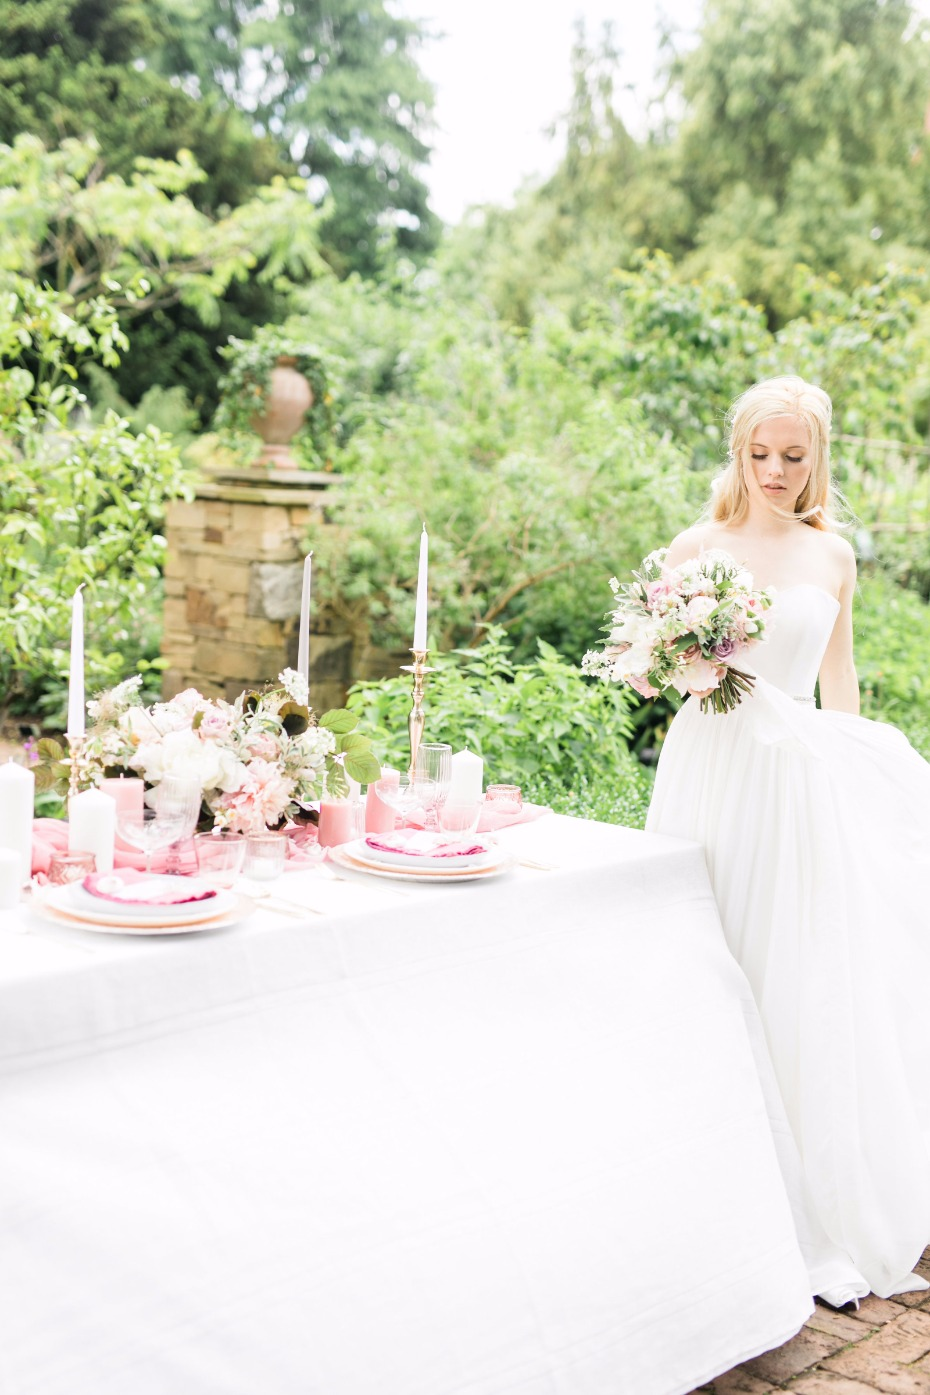 Who's dreaming of a garden wedding?